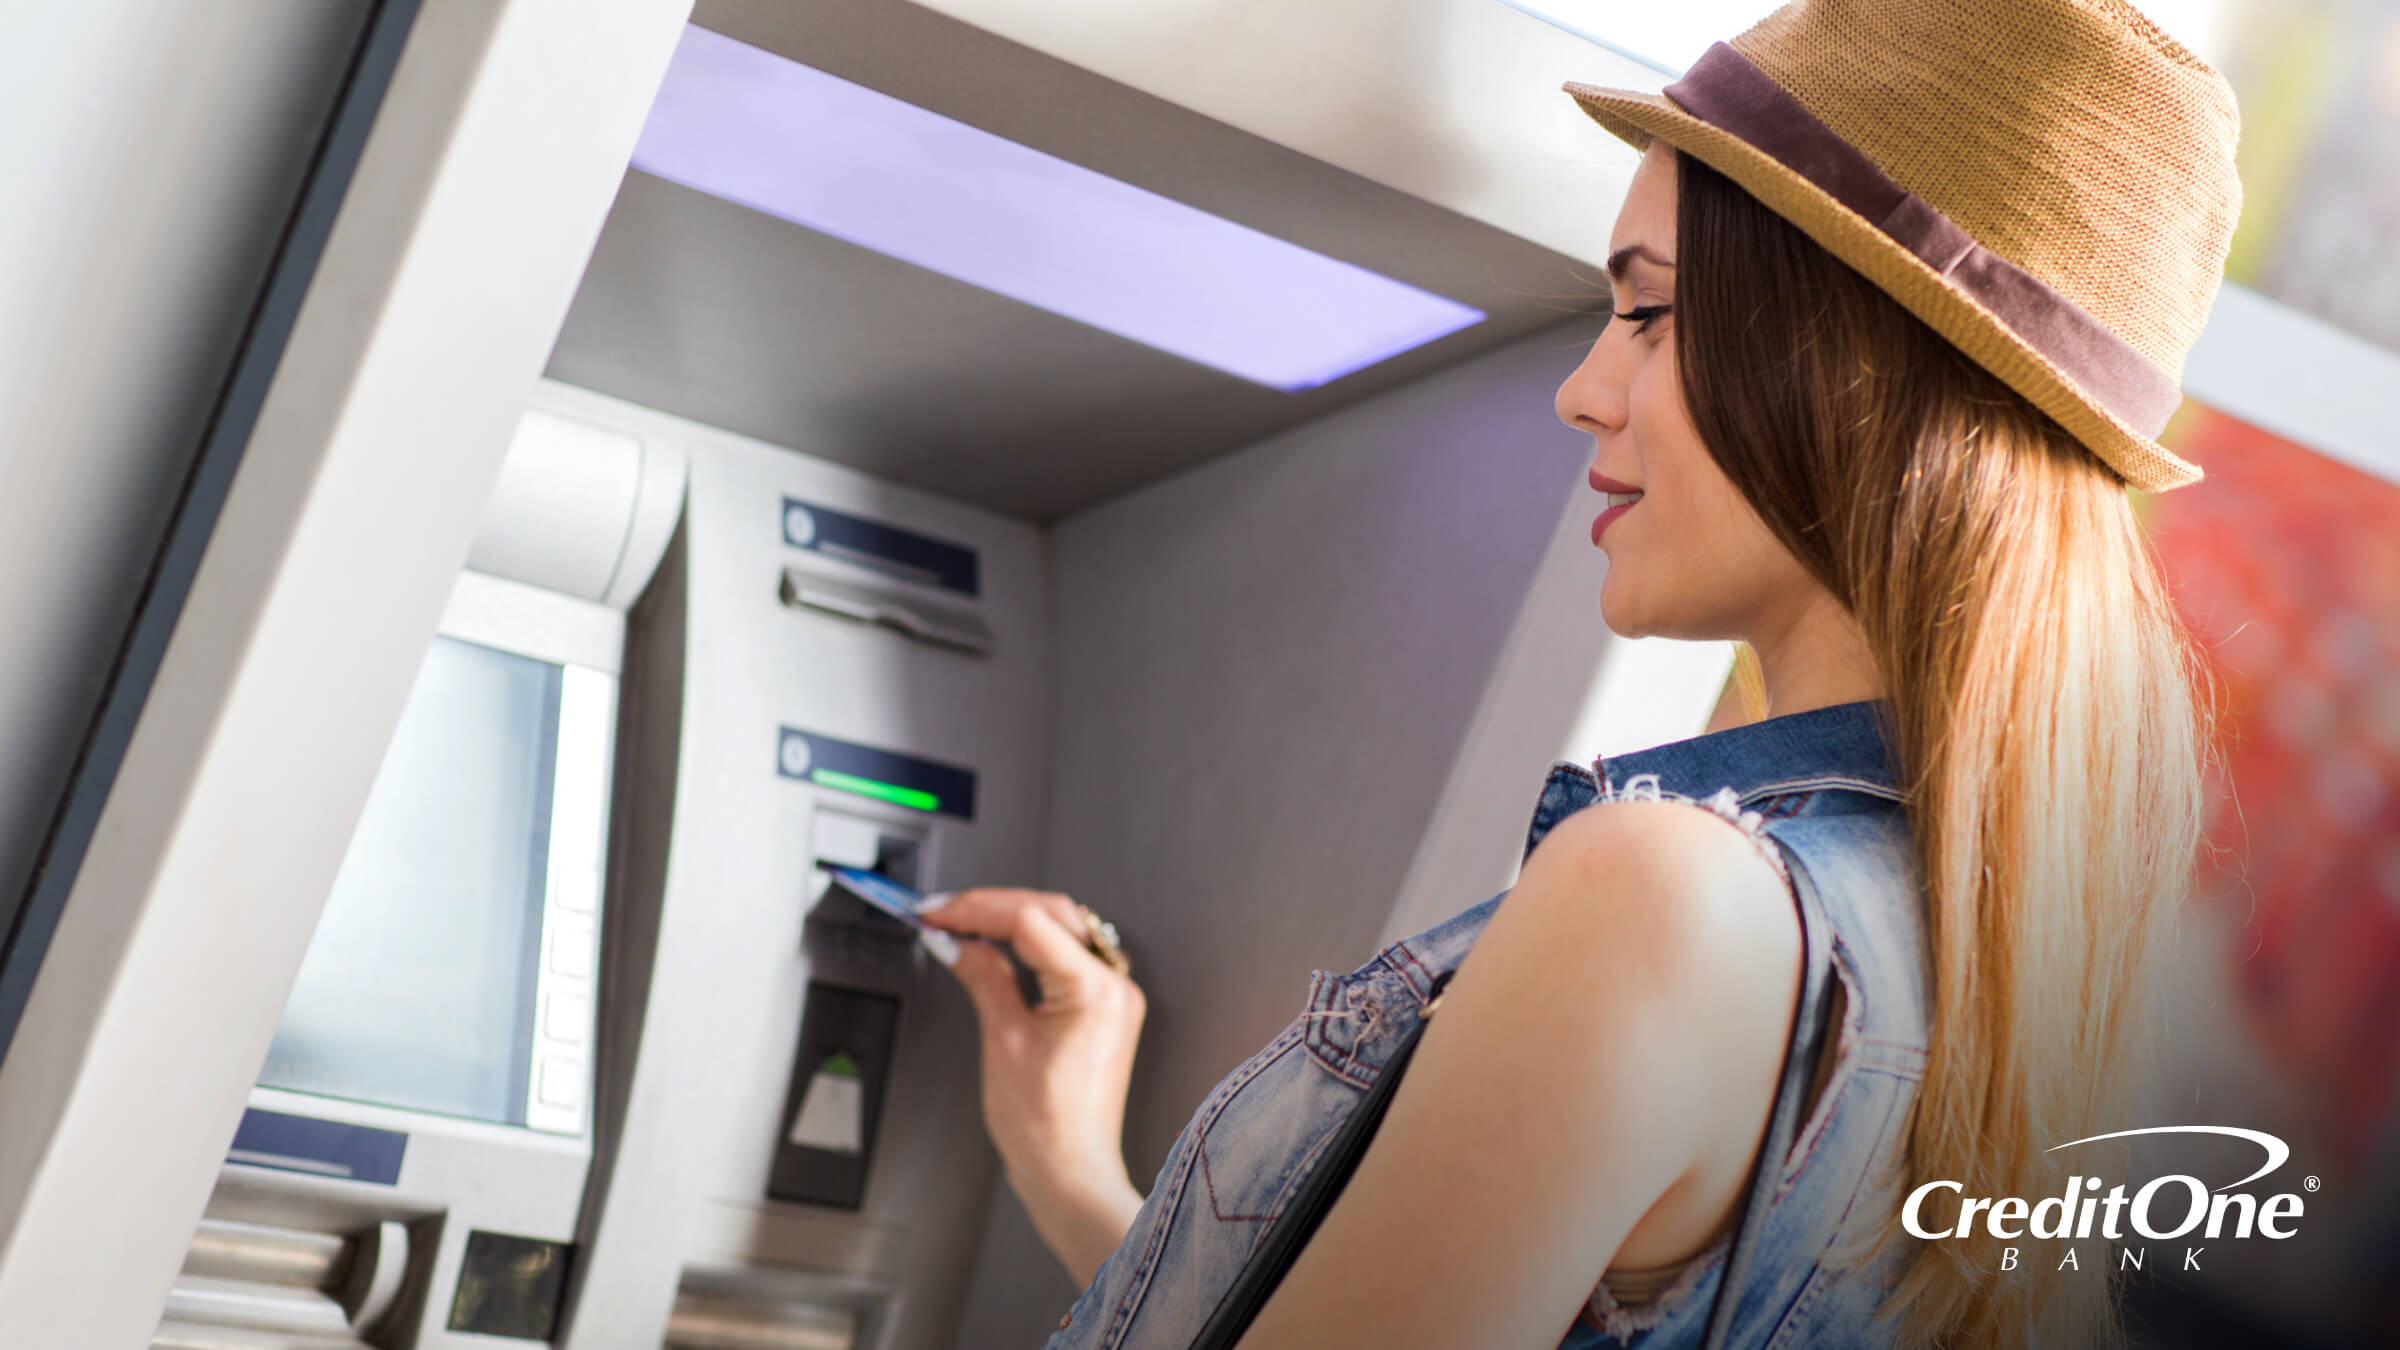 Woman withdrawing money from an ATM machine